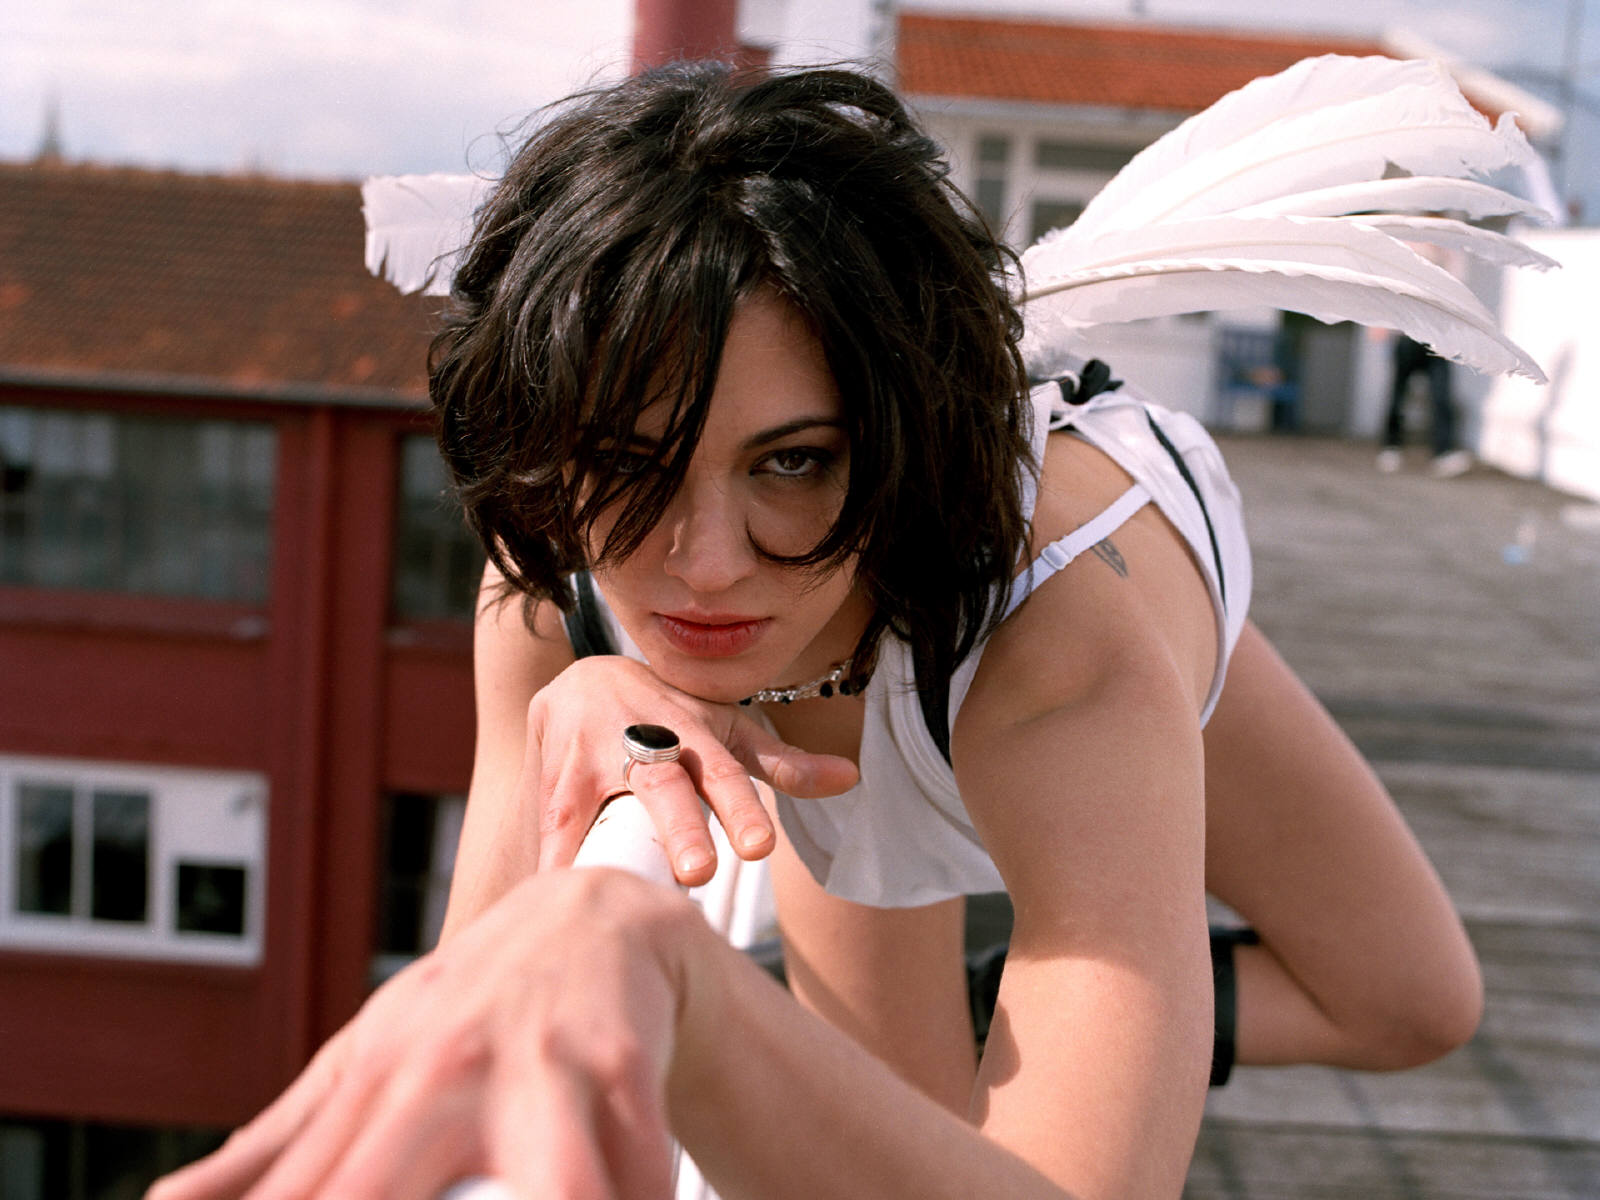 Sexy Asia Argento nudes (39 photo), Topless, Hot, Feet, swimsuit 2006